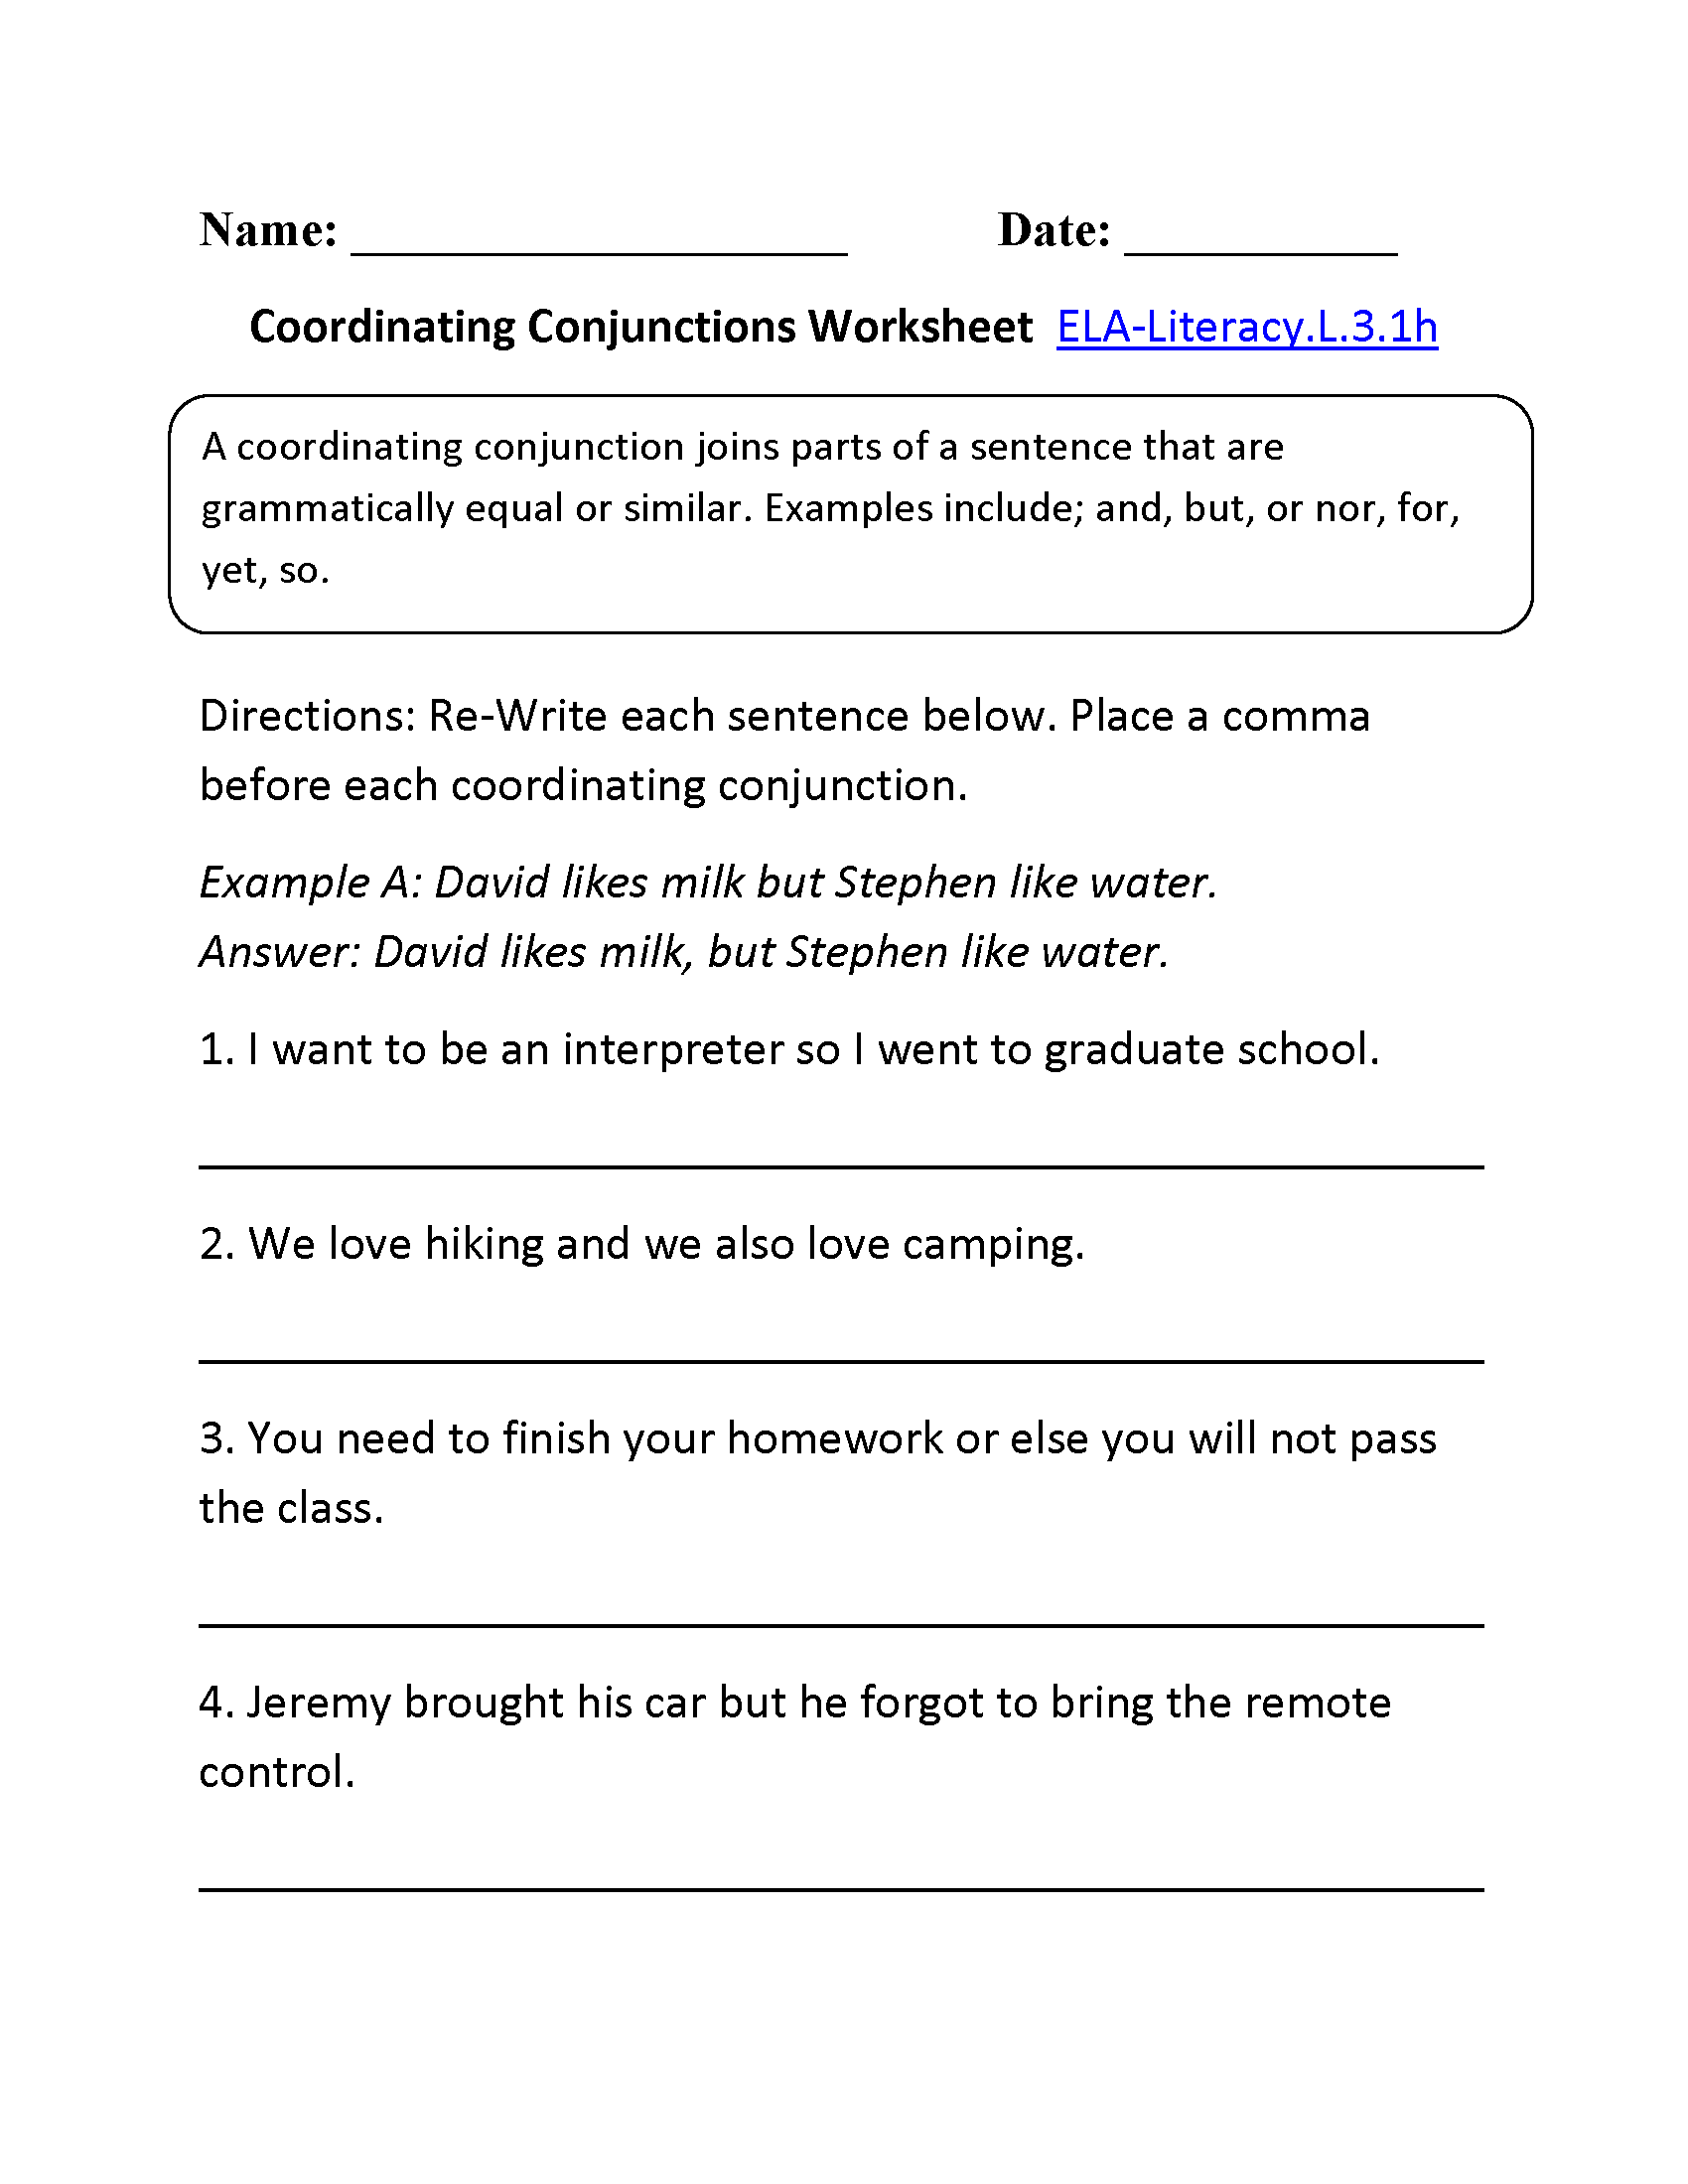 Coordinating Conjunctions Worksheet 1 L31 L31 – Conjunctions Worksheet 5th Grade